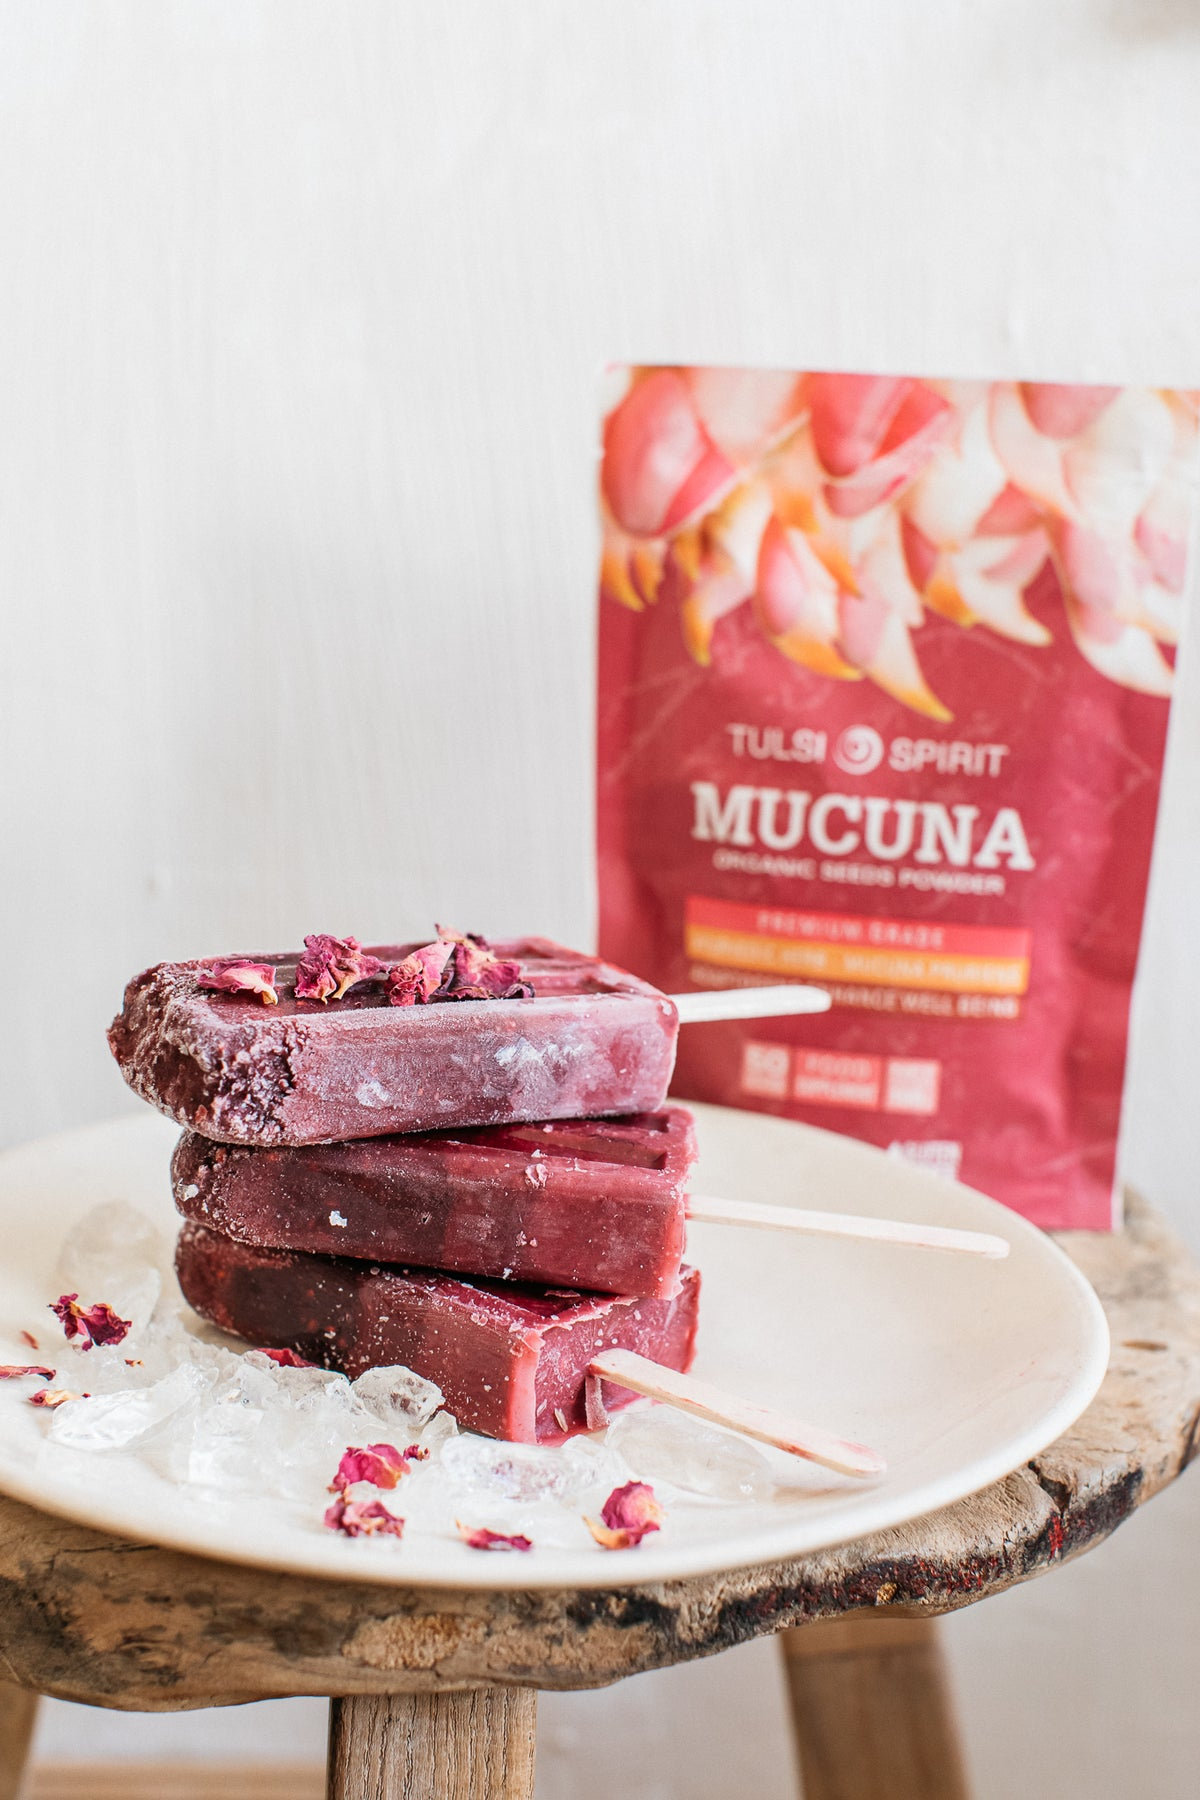 Blackberries-Mucuna ice lollies